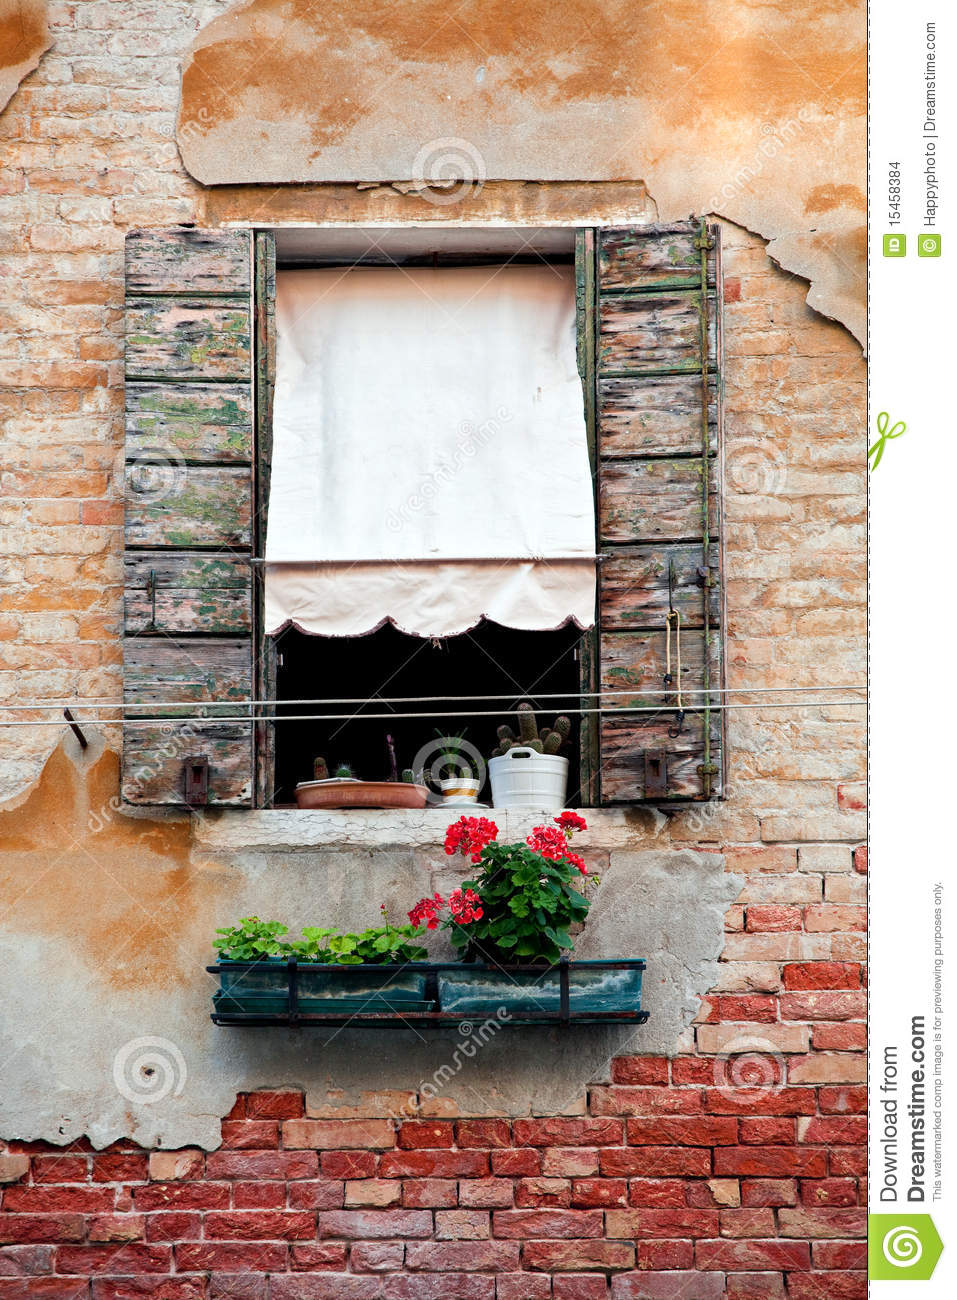 Rustic Window With Shutters In Old Venice House Stock